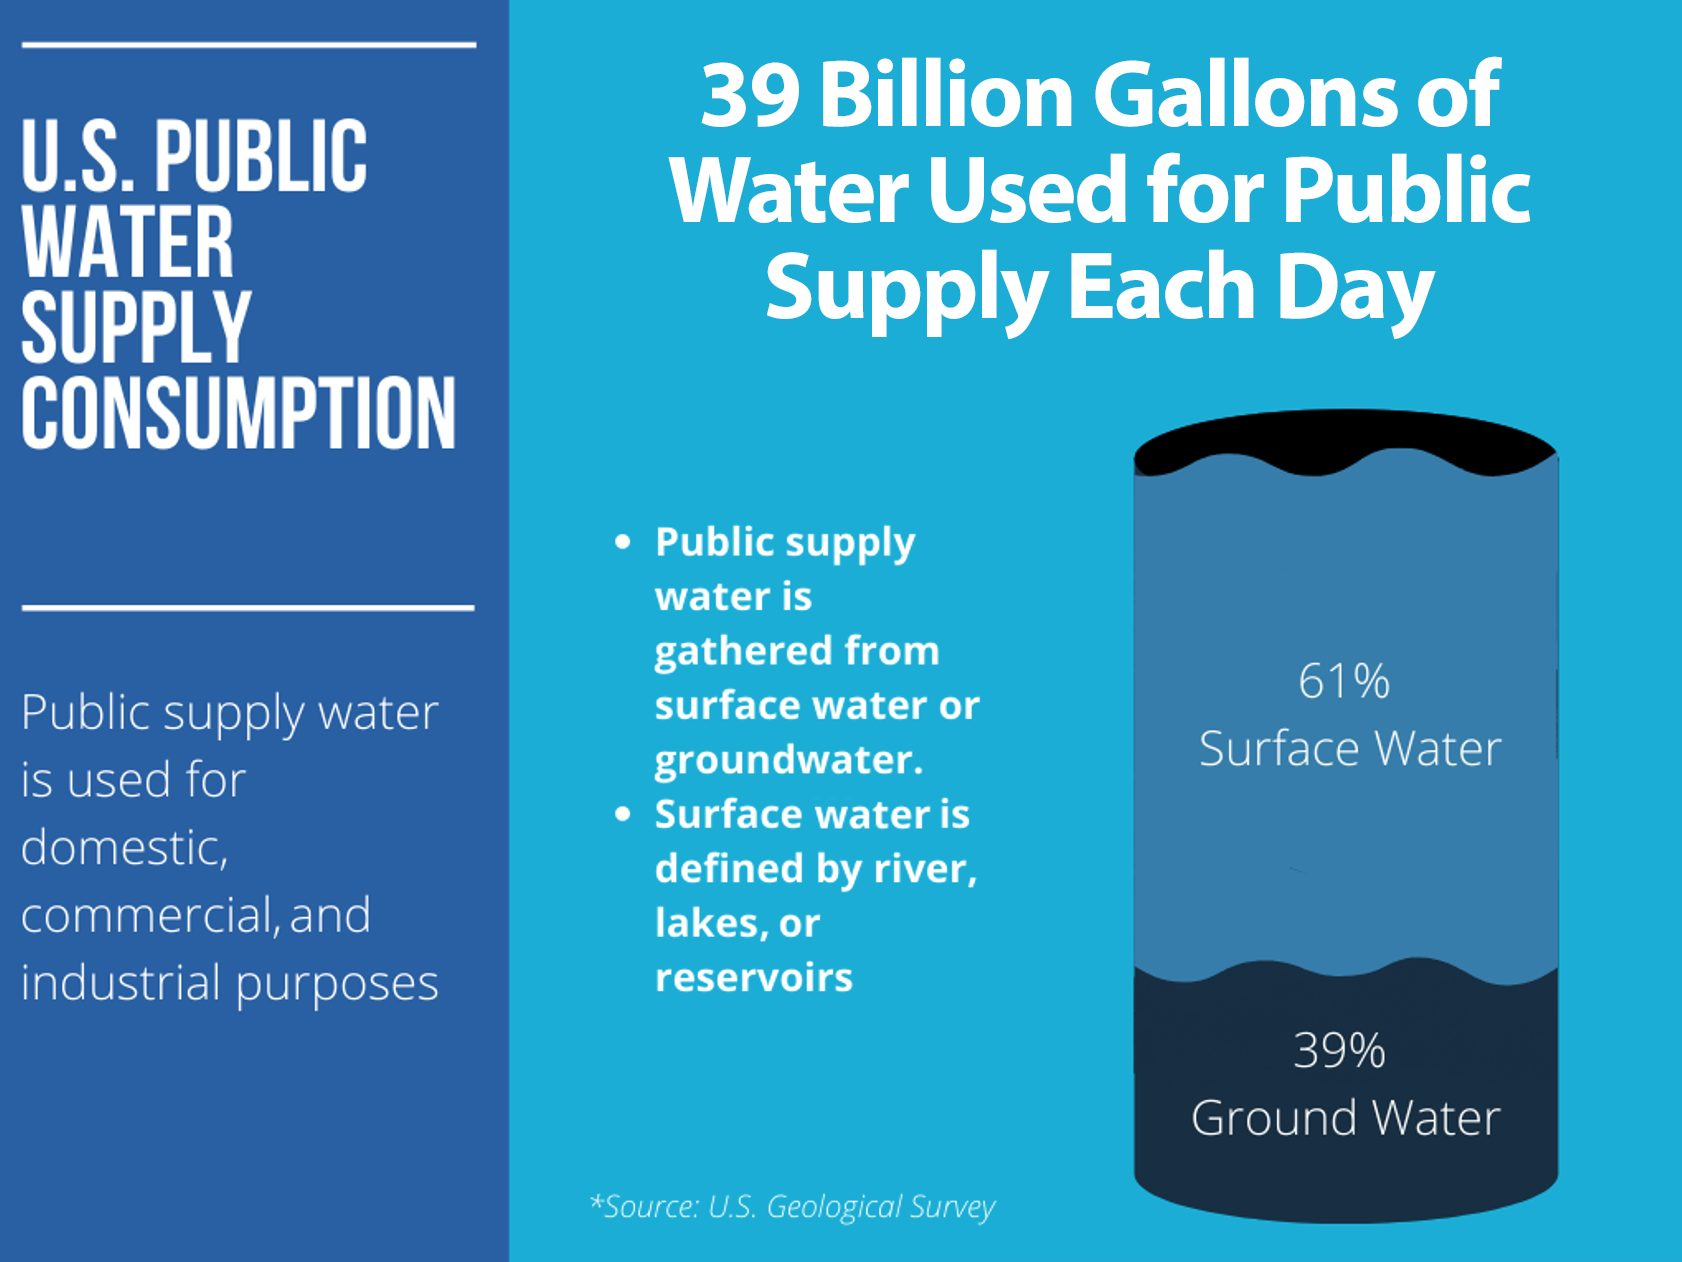 public water supply consumption